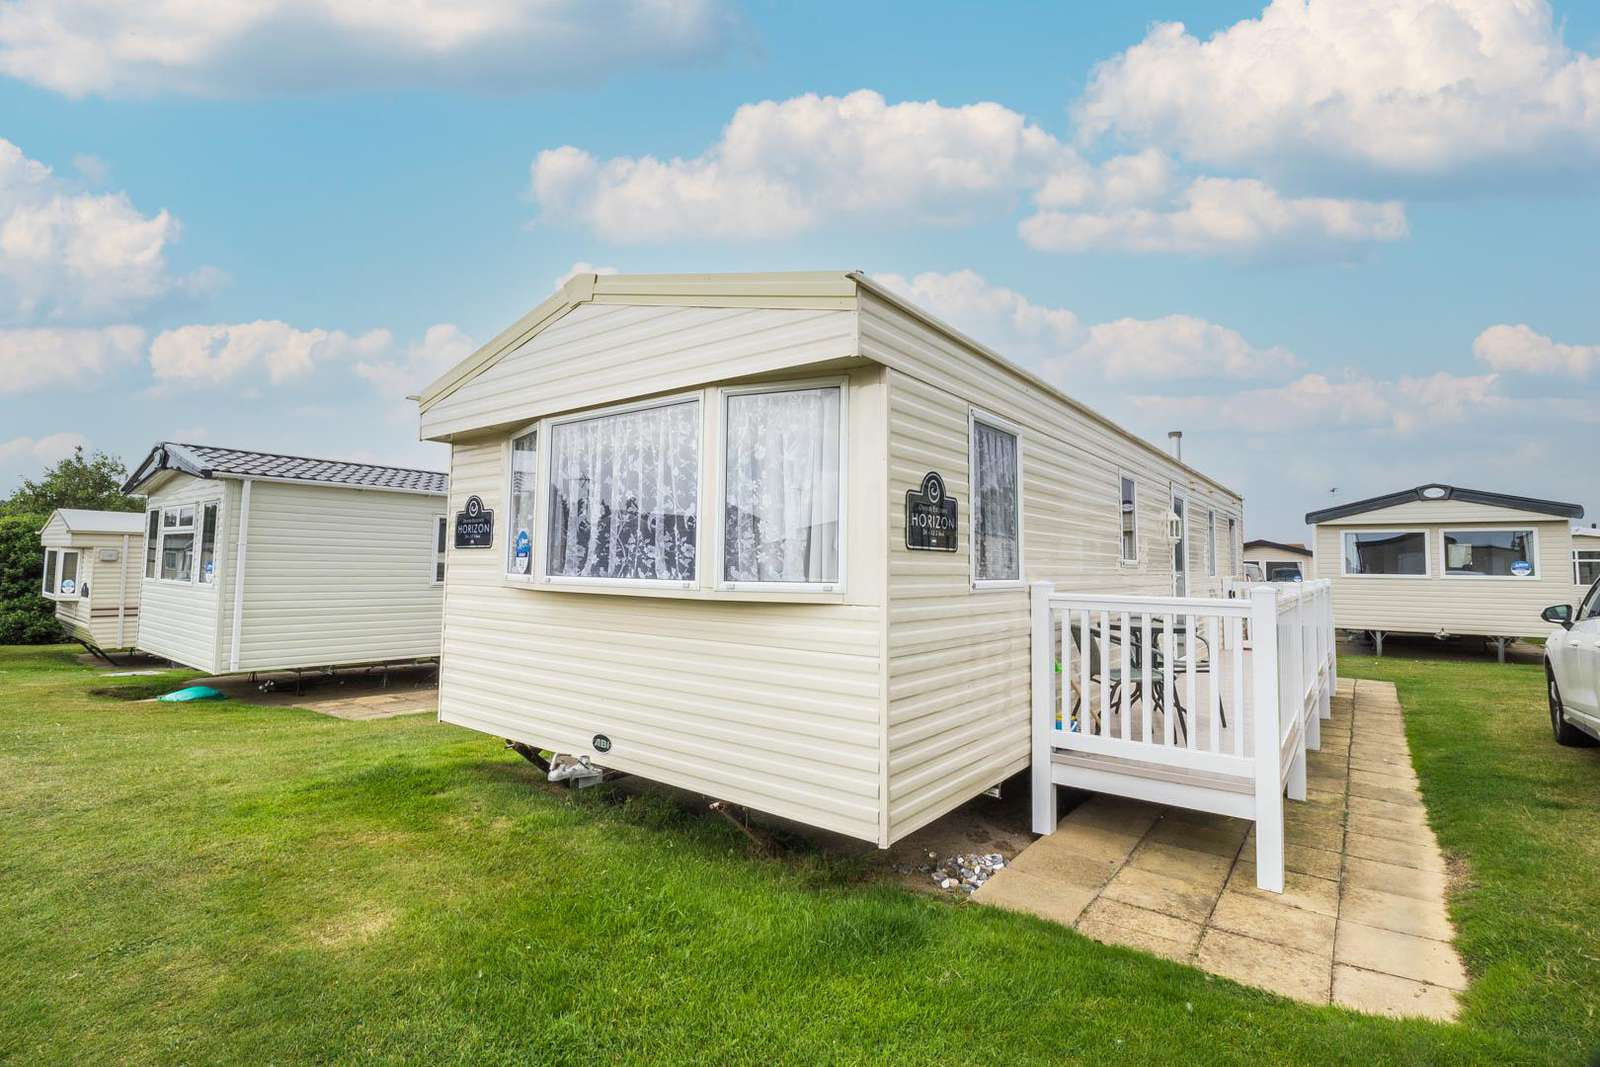 80041F – Fairways area, 3 bed, 8 berth caravan with decking to the side. Ruby rated - property